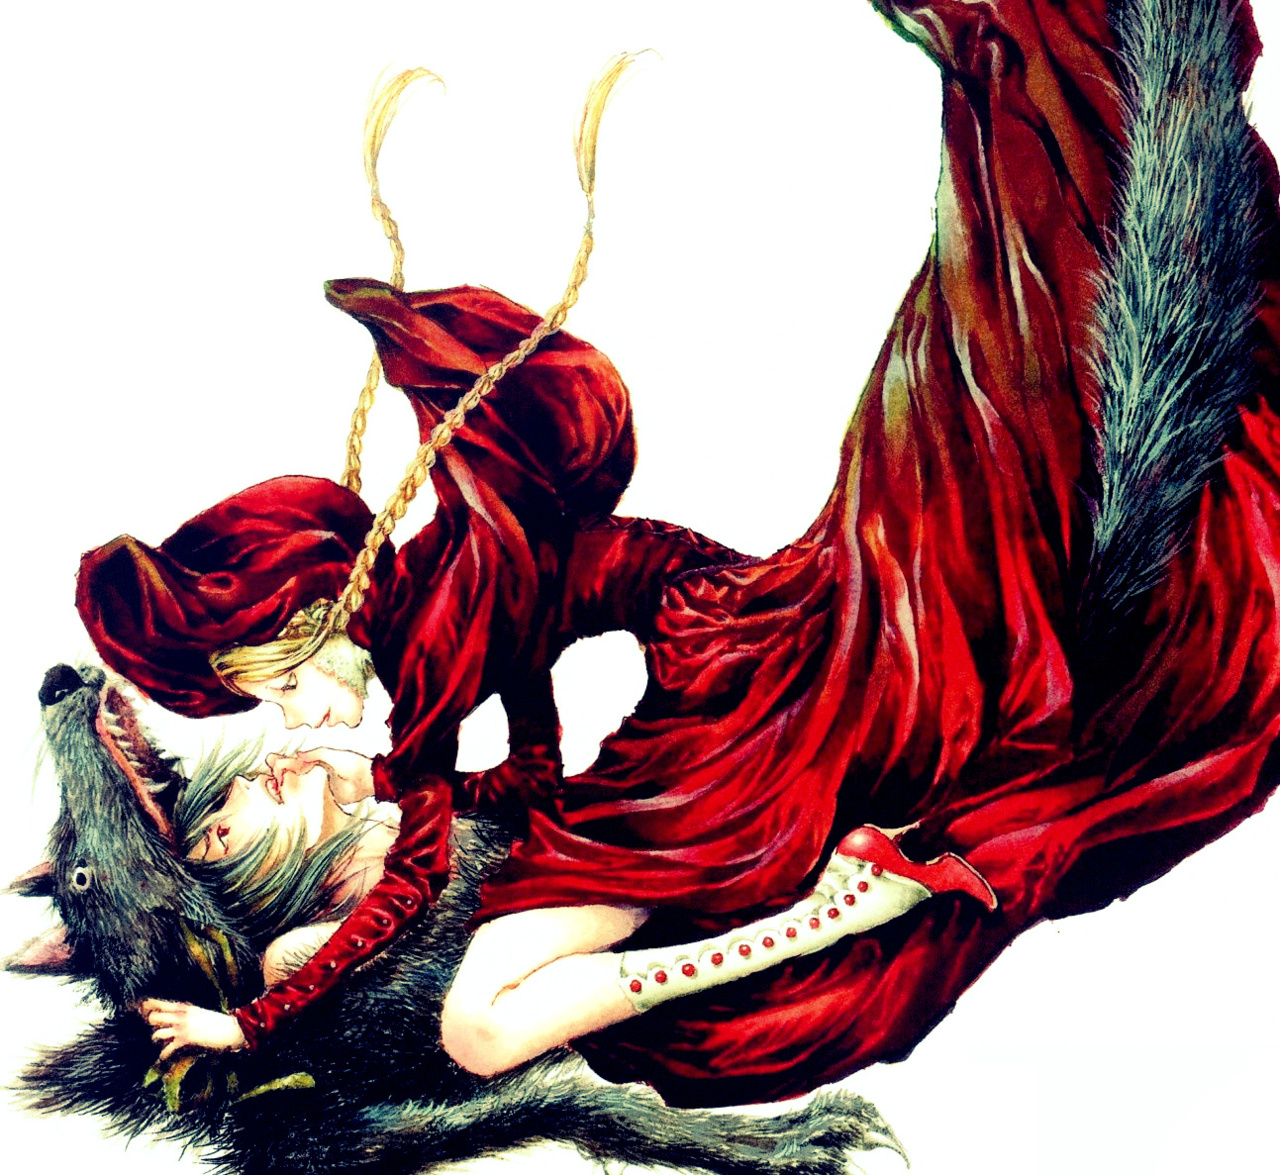 Anime red riding hood and wolf